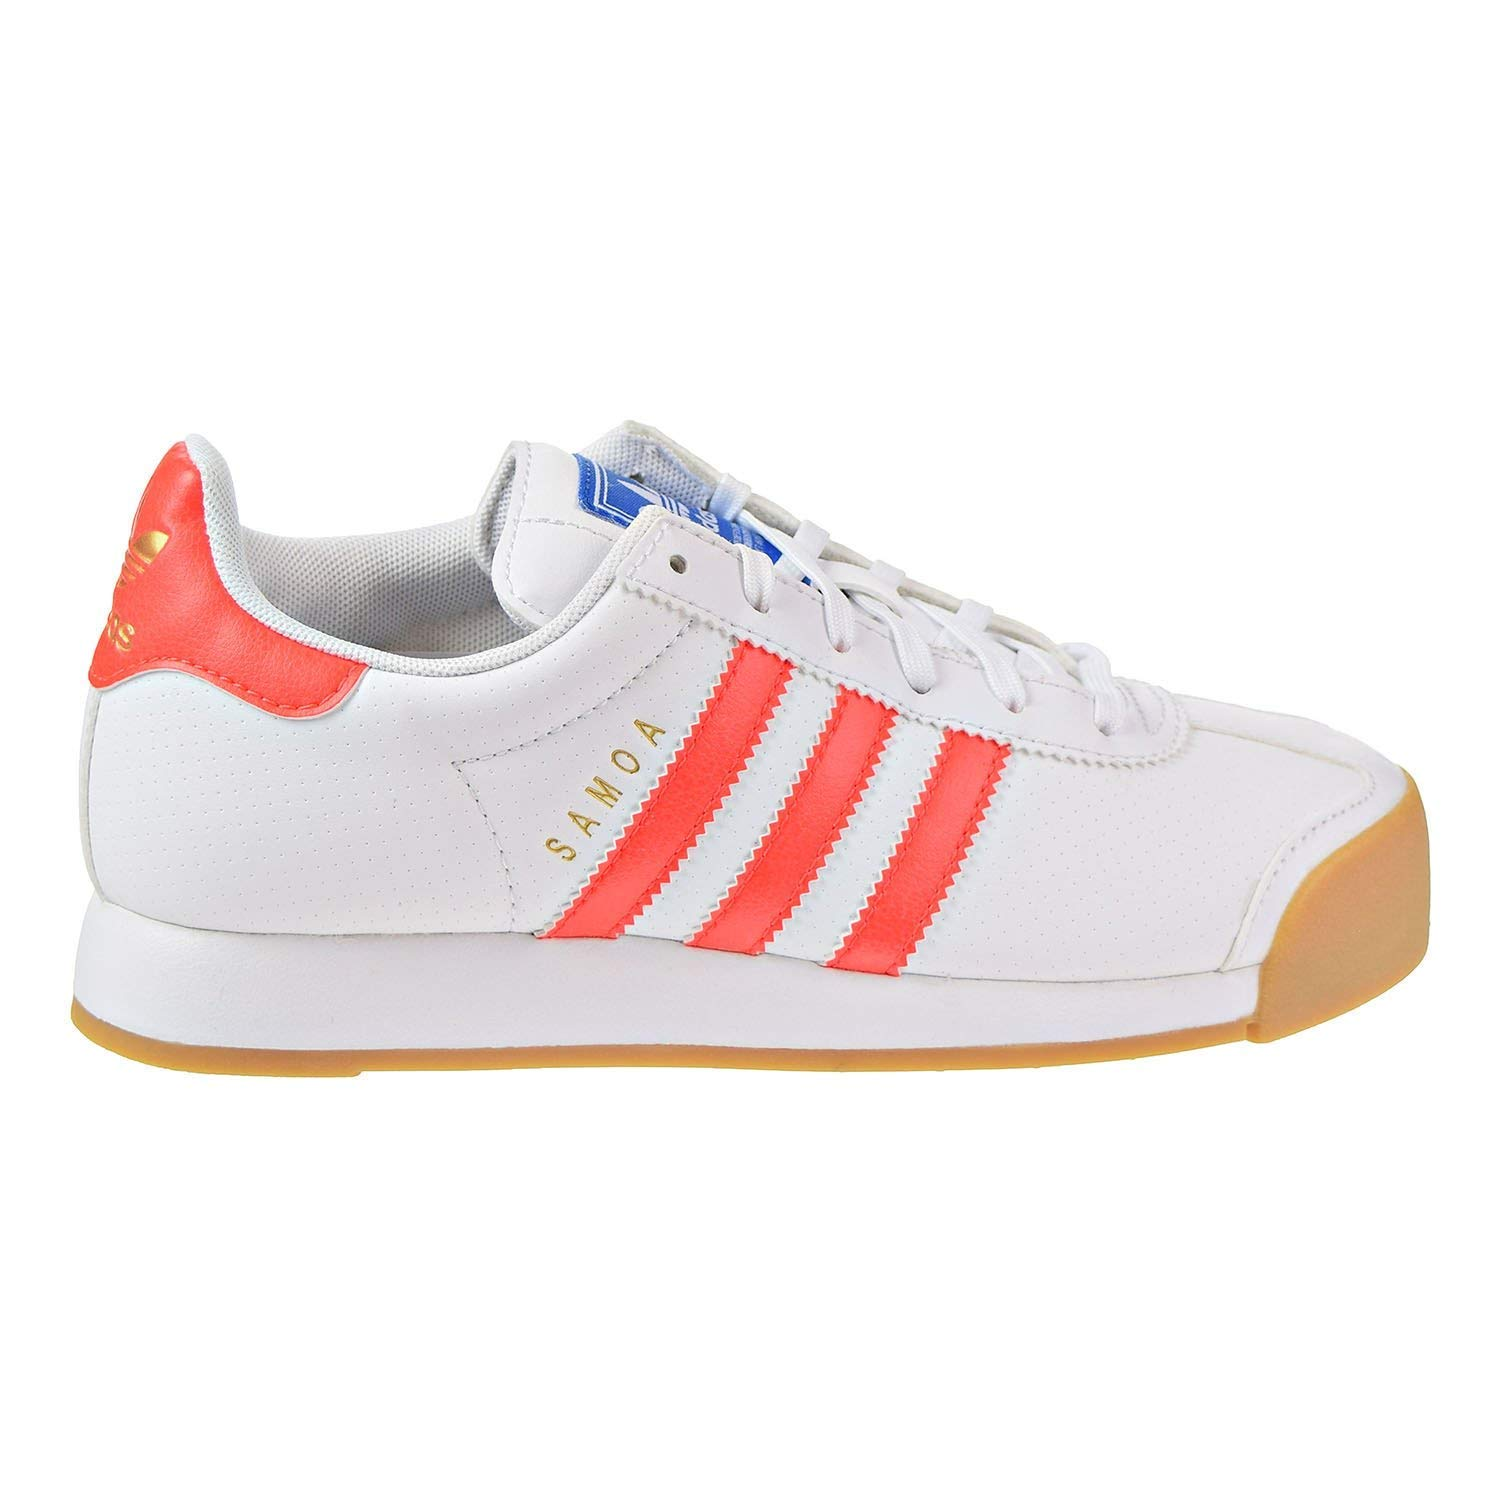 adidas Originals Samoa Sneaker (Little Kid/Big Kid) Samoa C - K